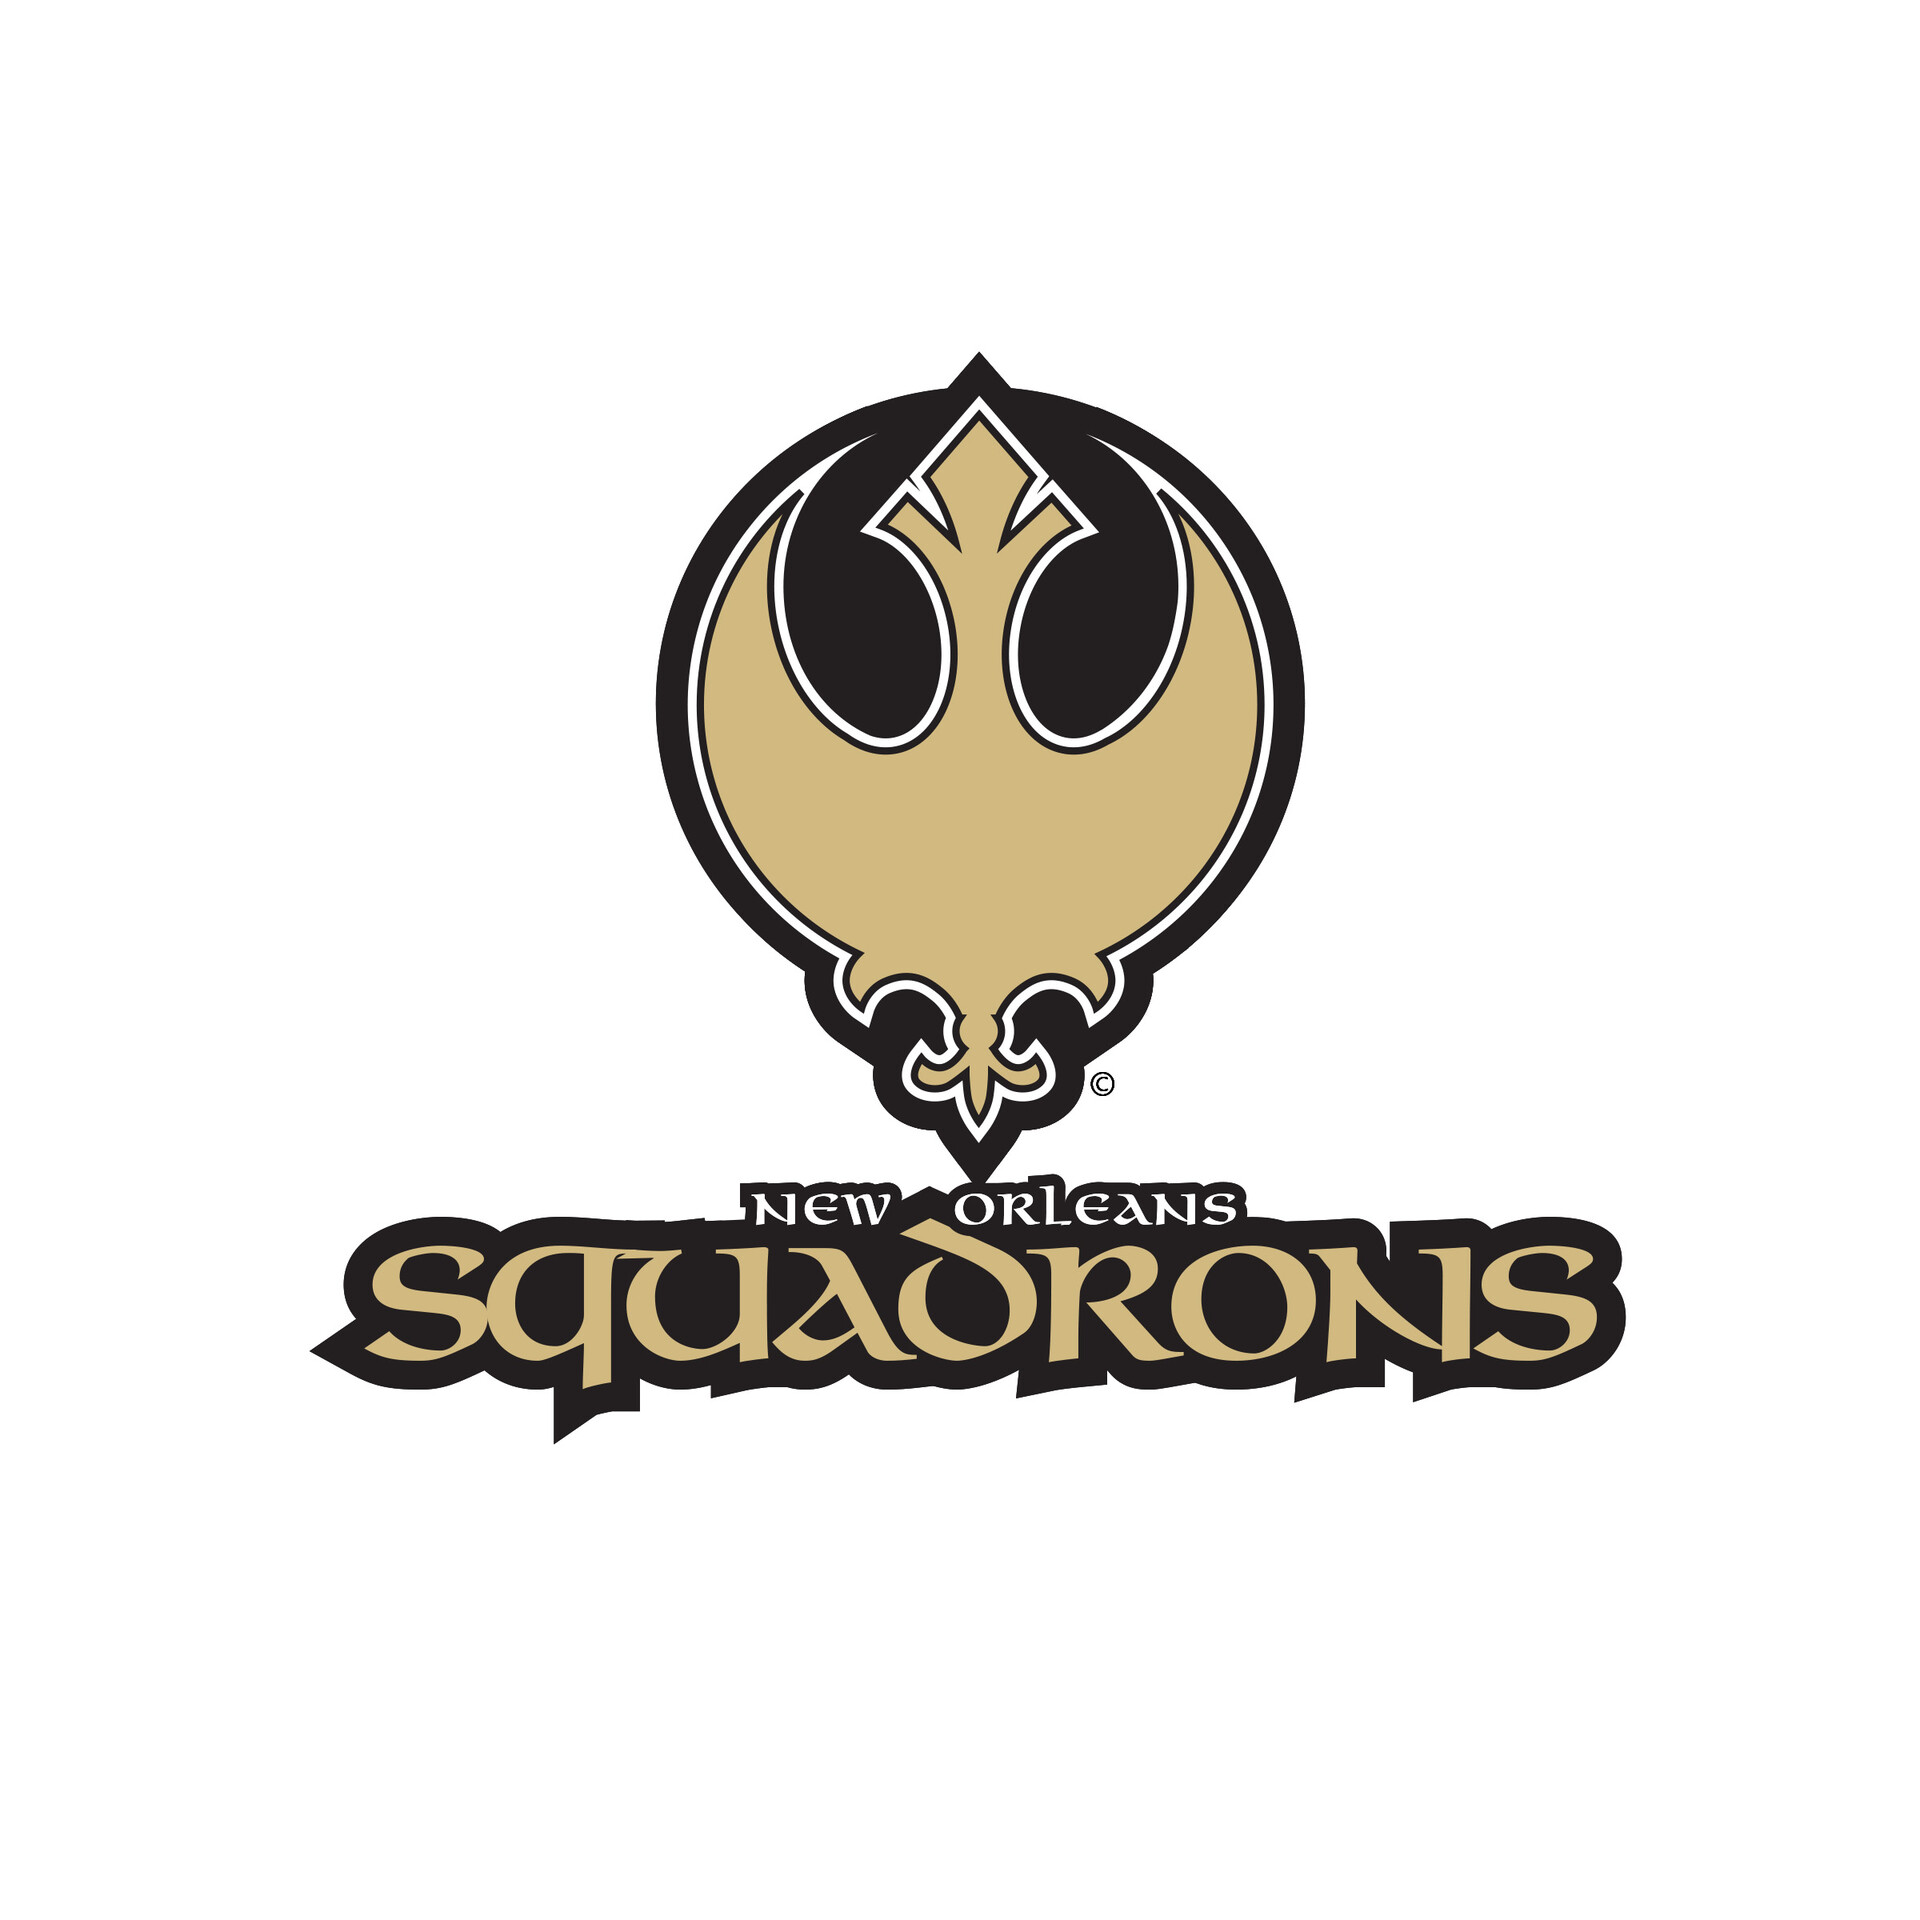 New Orleans Squadrons